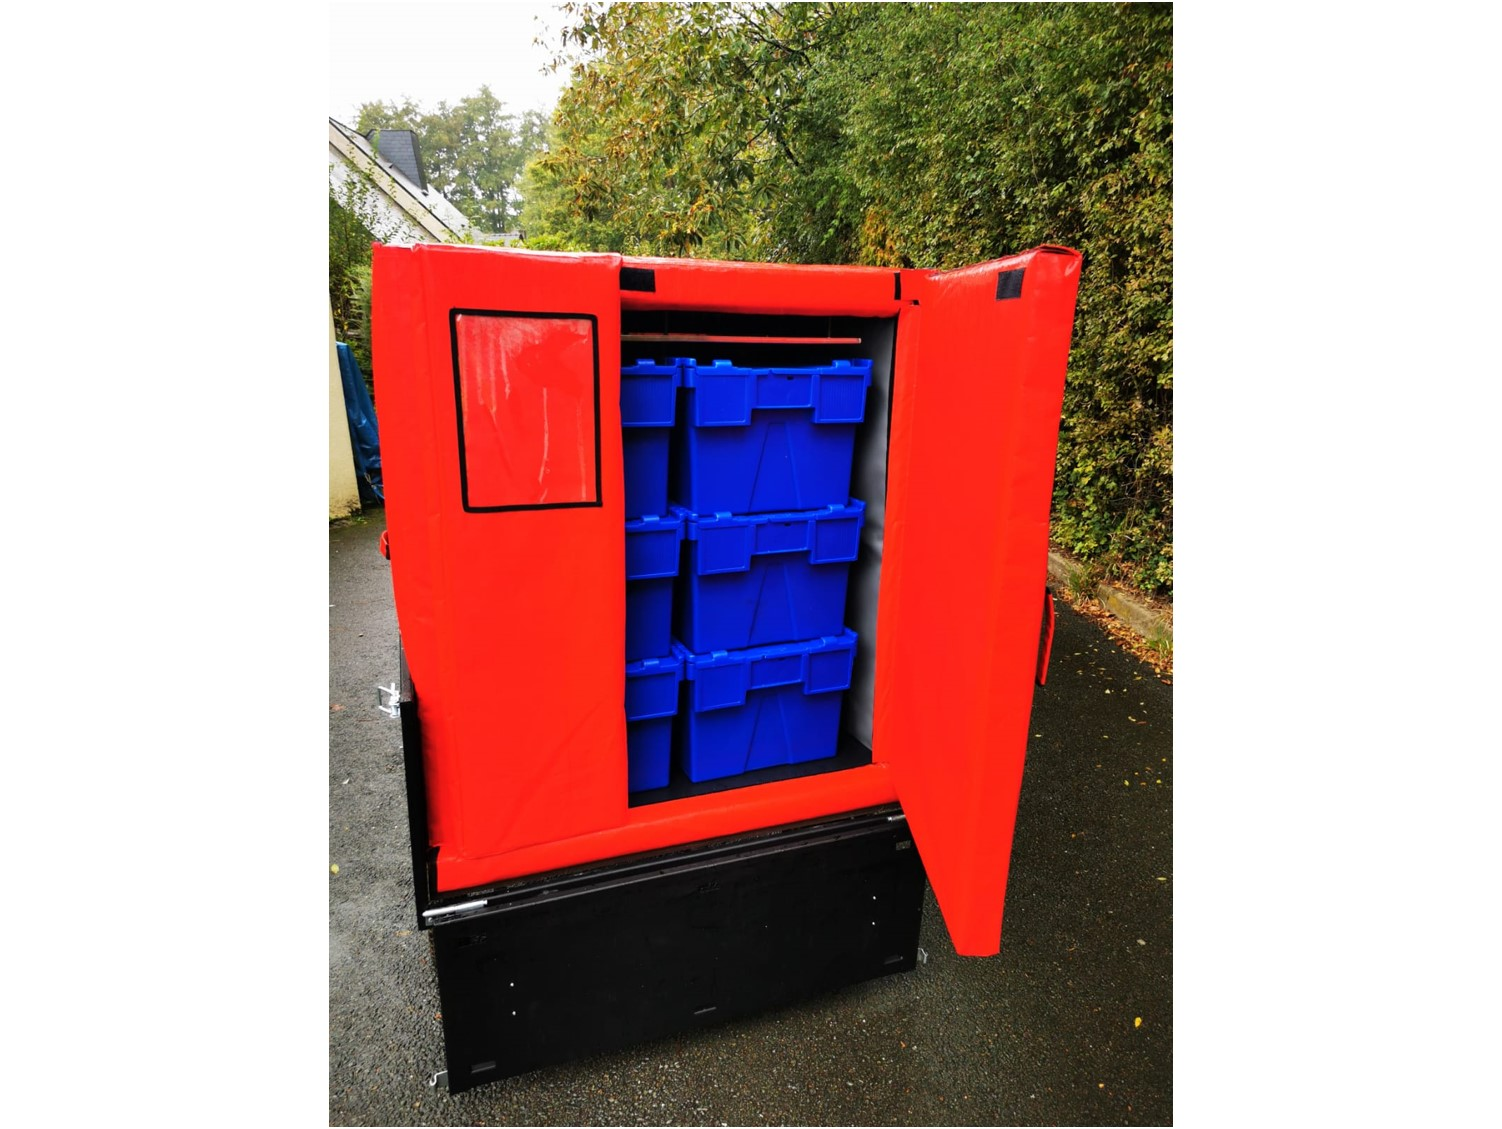 Refrigerated insulated container for bicycle trailer. Soft delivery of fresh products in the city centre.